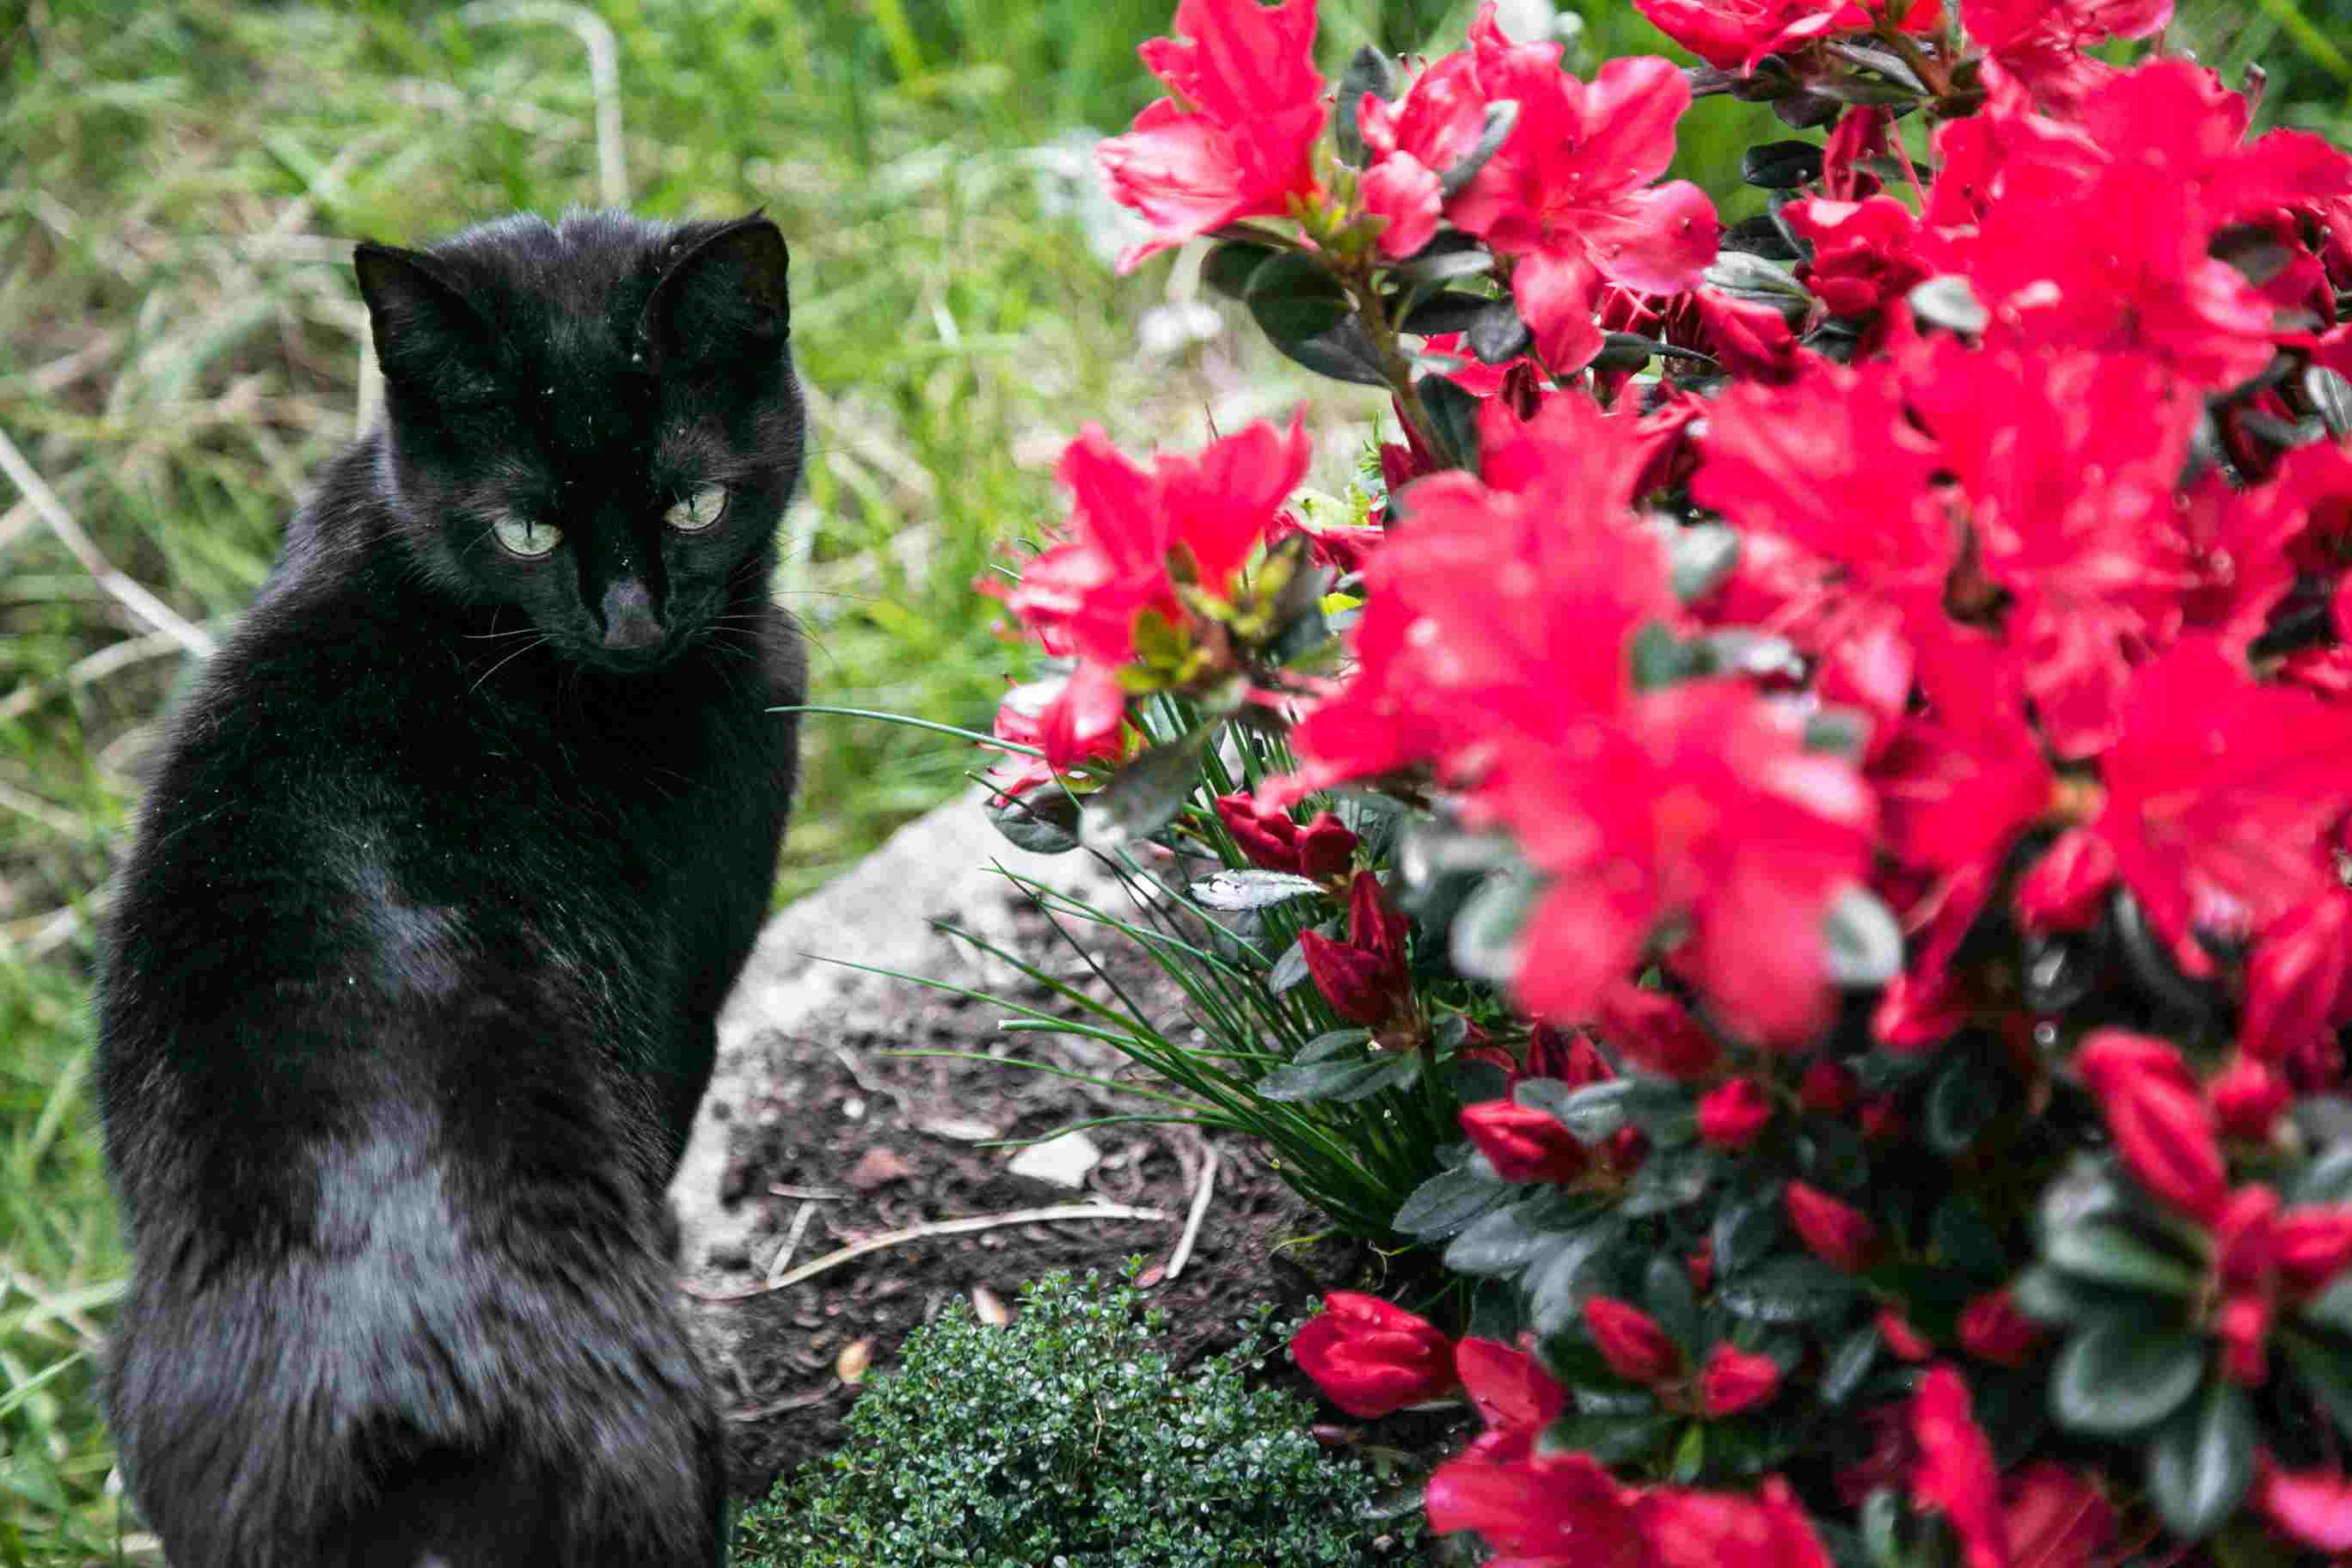 Common Garden Plants That Are Toxic To Cats